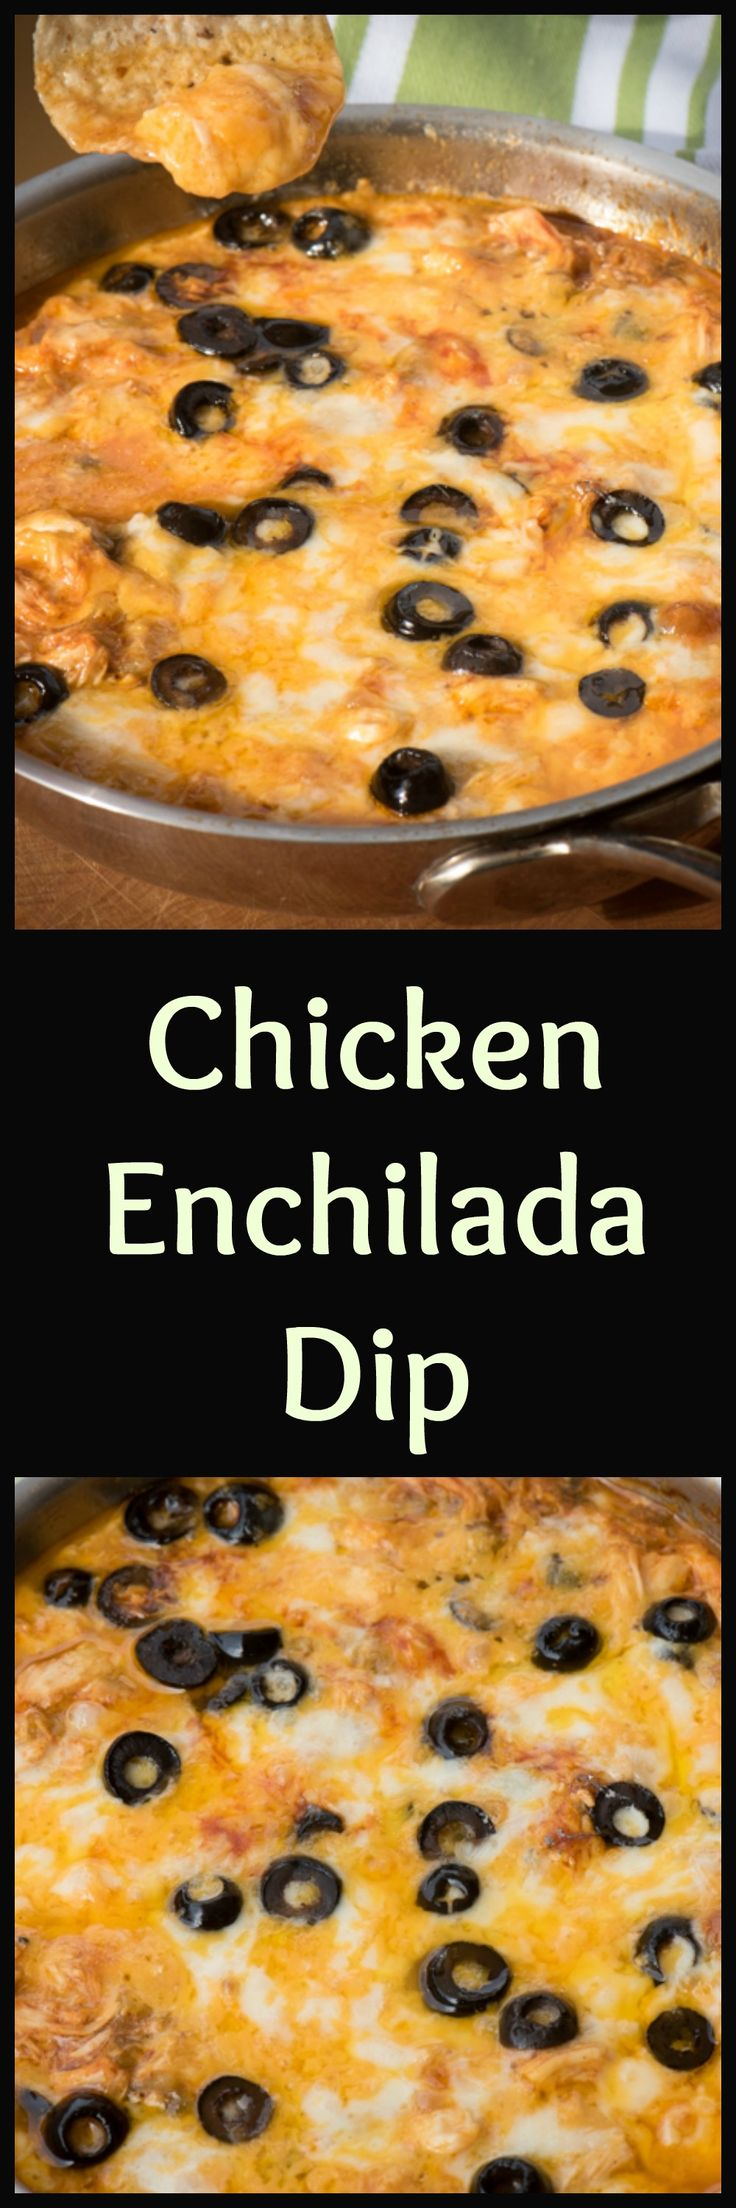 Make chicken enchilada dip ahead of time and pop in hot oven and heat until bubbly. Score! | The Recipe Wench